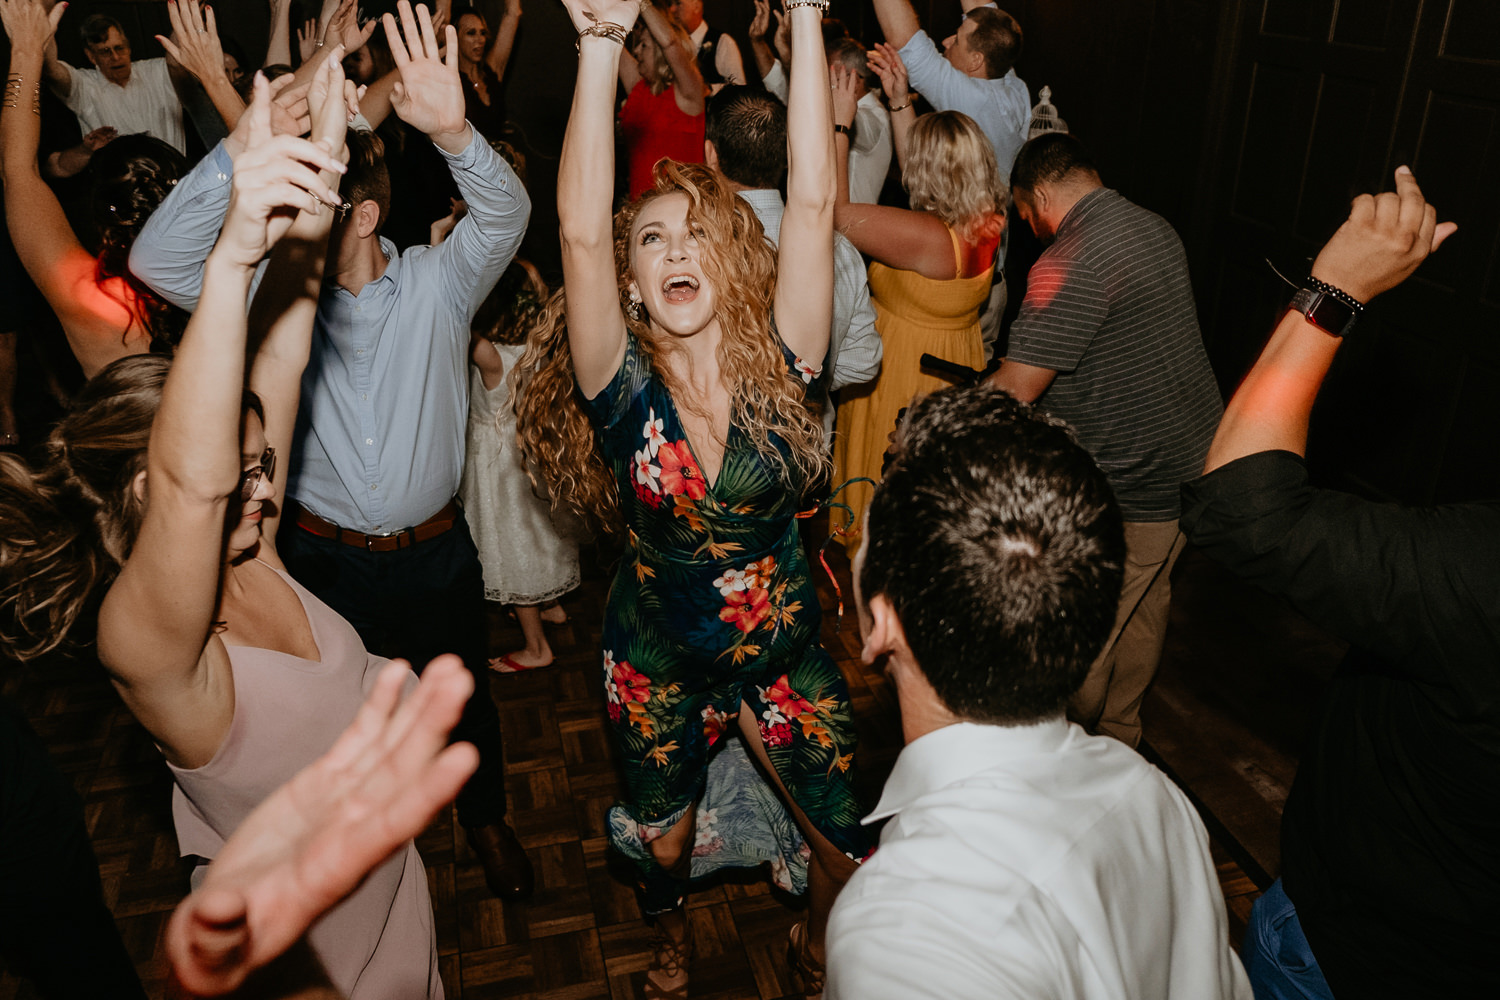 wedding guest with red curly hair singing and hands in the air